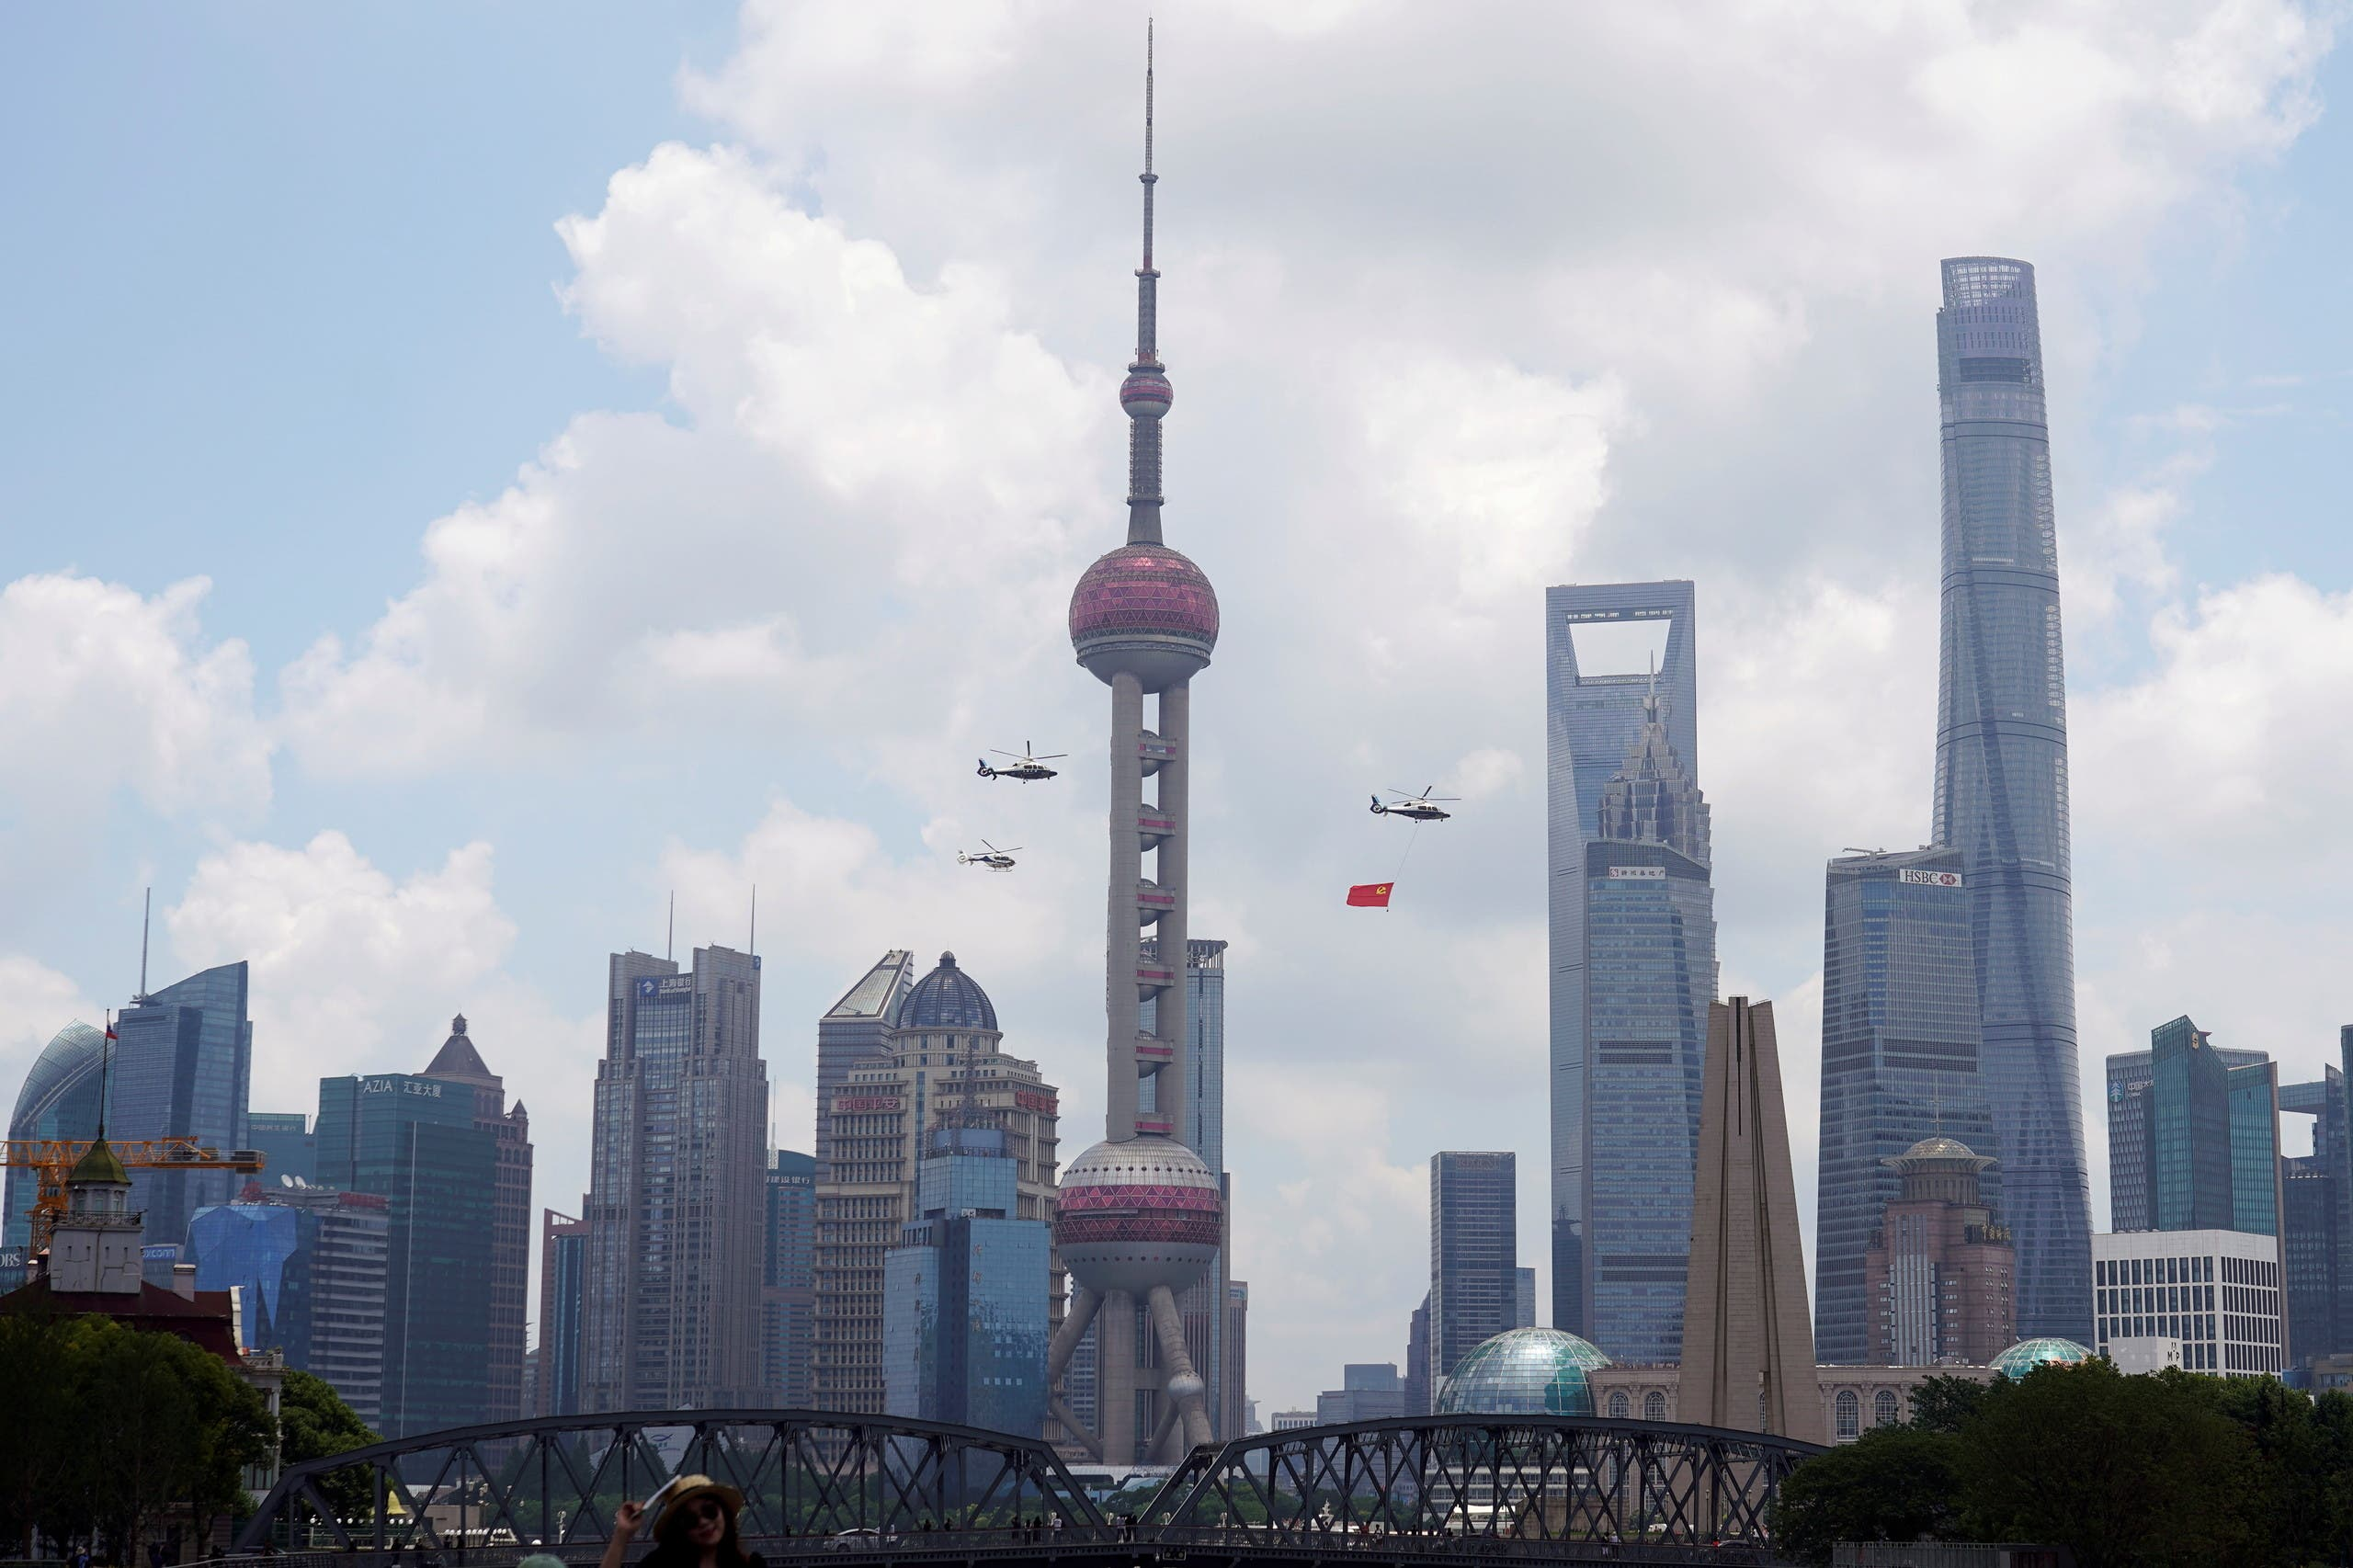 Aircraft fly in formation past Oriental Pearl Tower at Lujiazui financial district of Pudong on the 100th founding anniversary of the Communist Party of China, in Shanghai, China July 1, 2021. (Reuters)